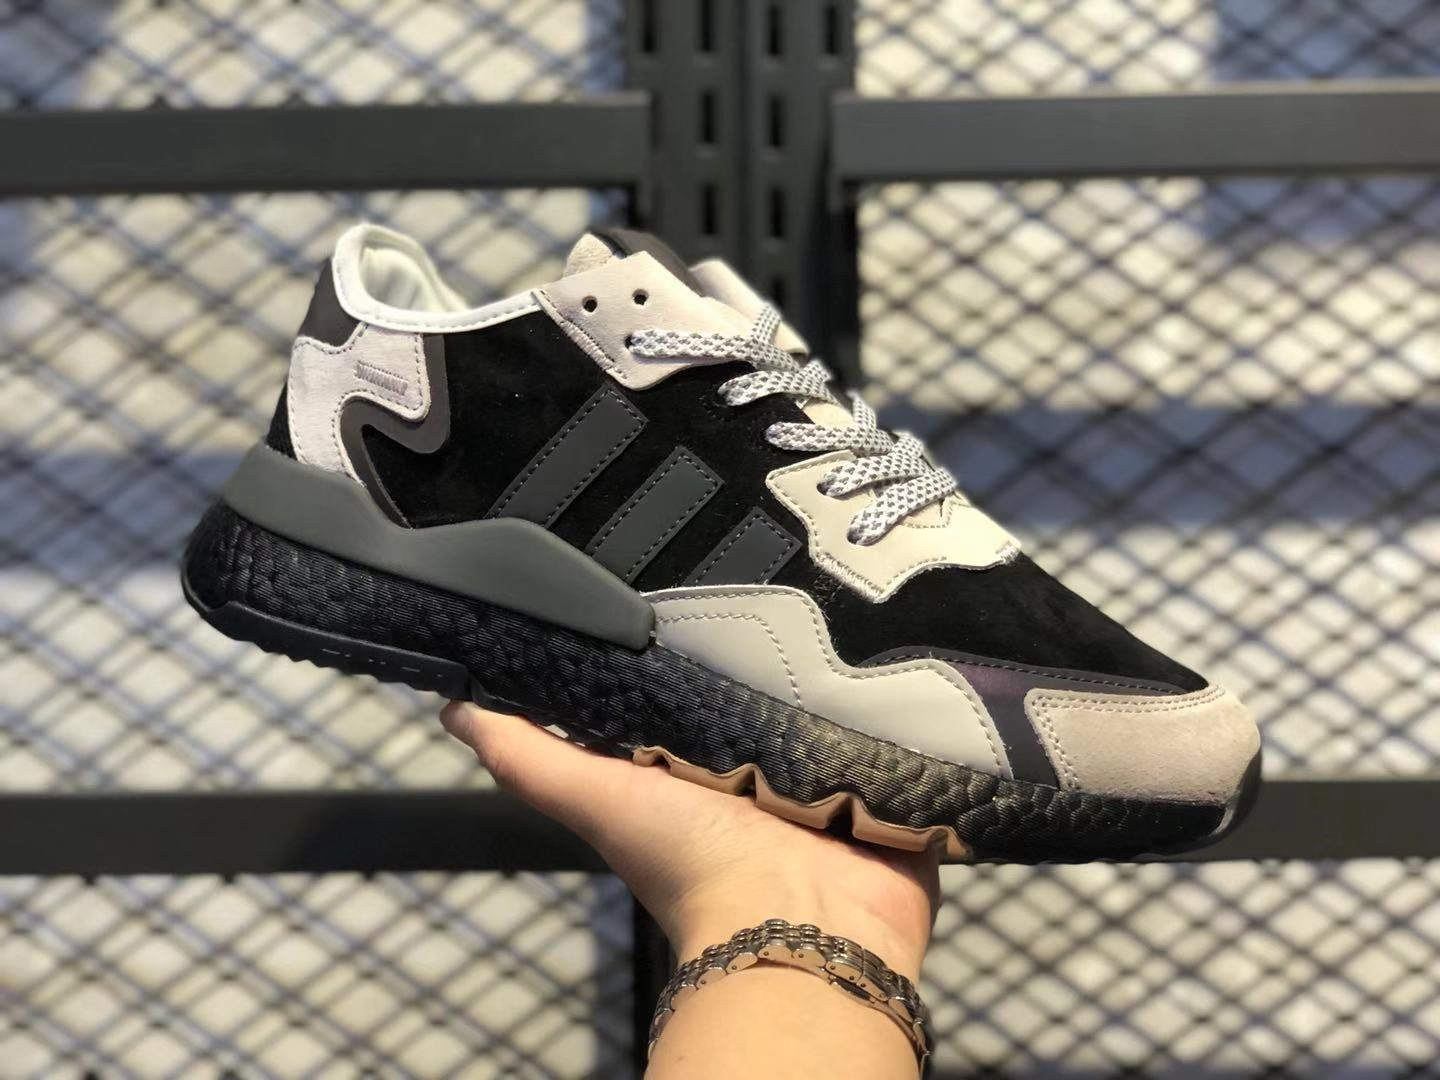 Adidas Nite Jogger 2019 Boost Black/Teal Running Shoes For Sale BD7936